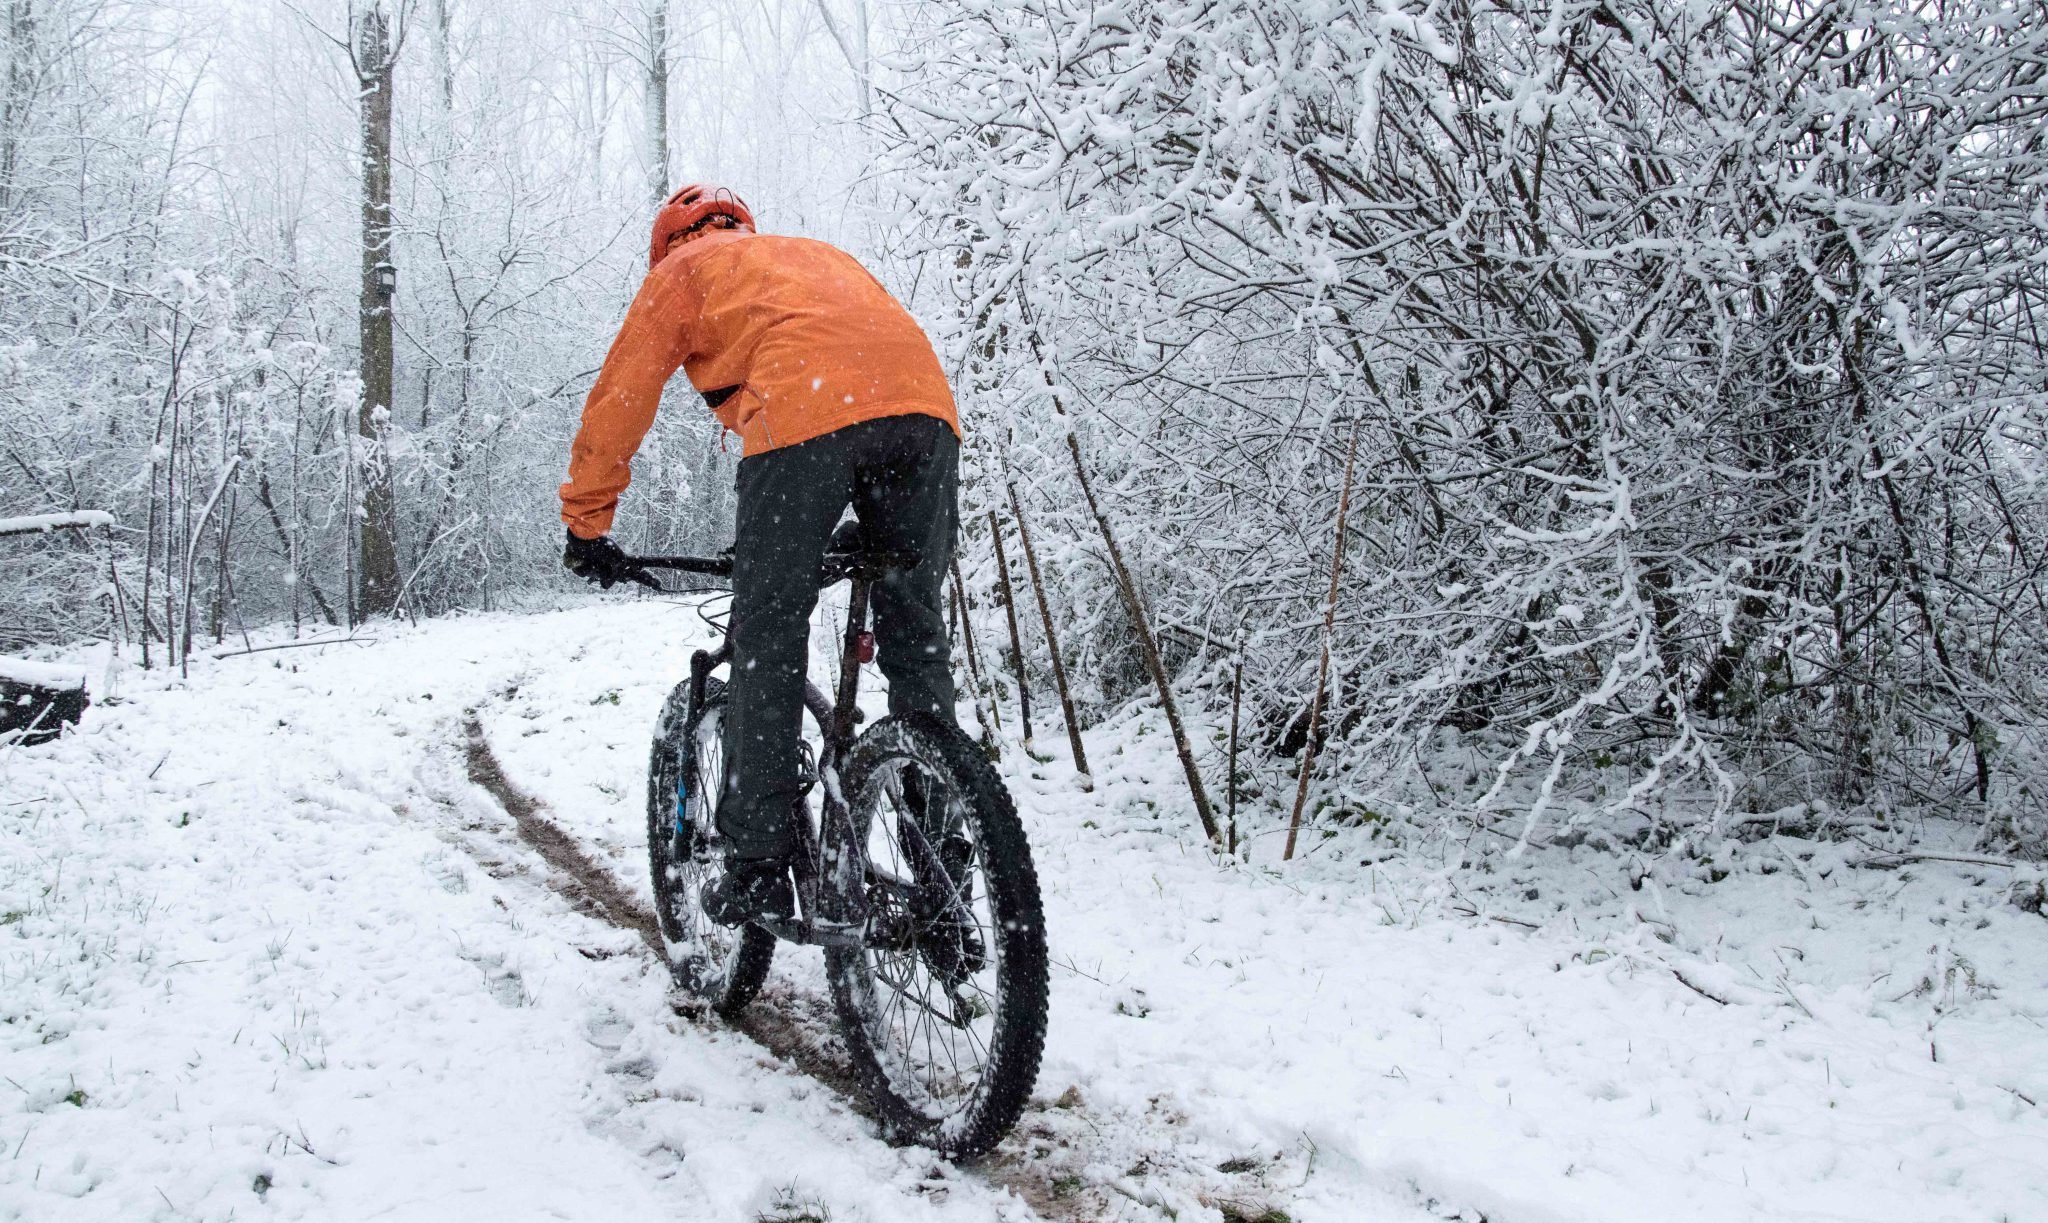 Twintest warme winterbroeken: Bontrager OMW Softshell versus Endura Singletrack Trail Pants